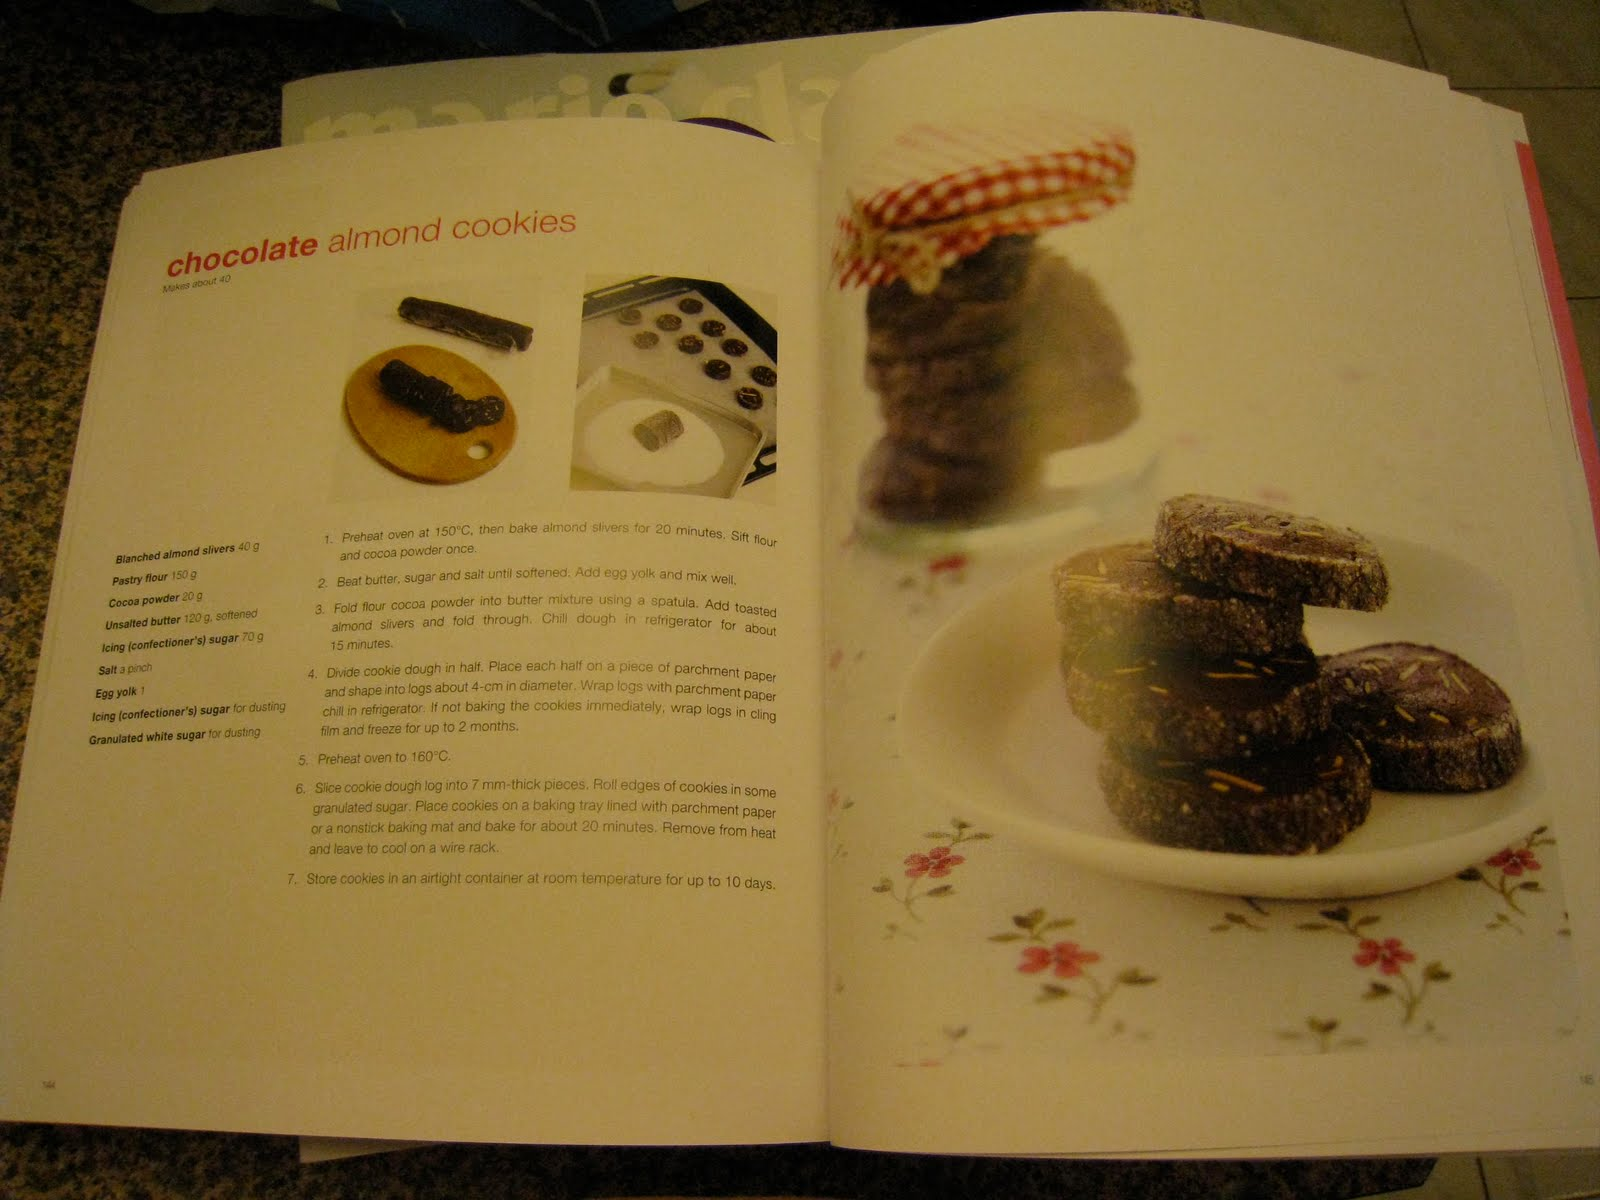 Panda Cakes June 2010 Wiring Simplified Book From The And Quantities Have Been Doubled I Wasnt Happy With Order Of Her Instructions Them For Those Keen On Trying It